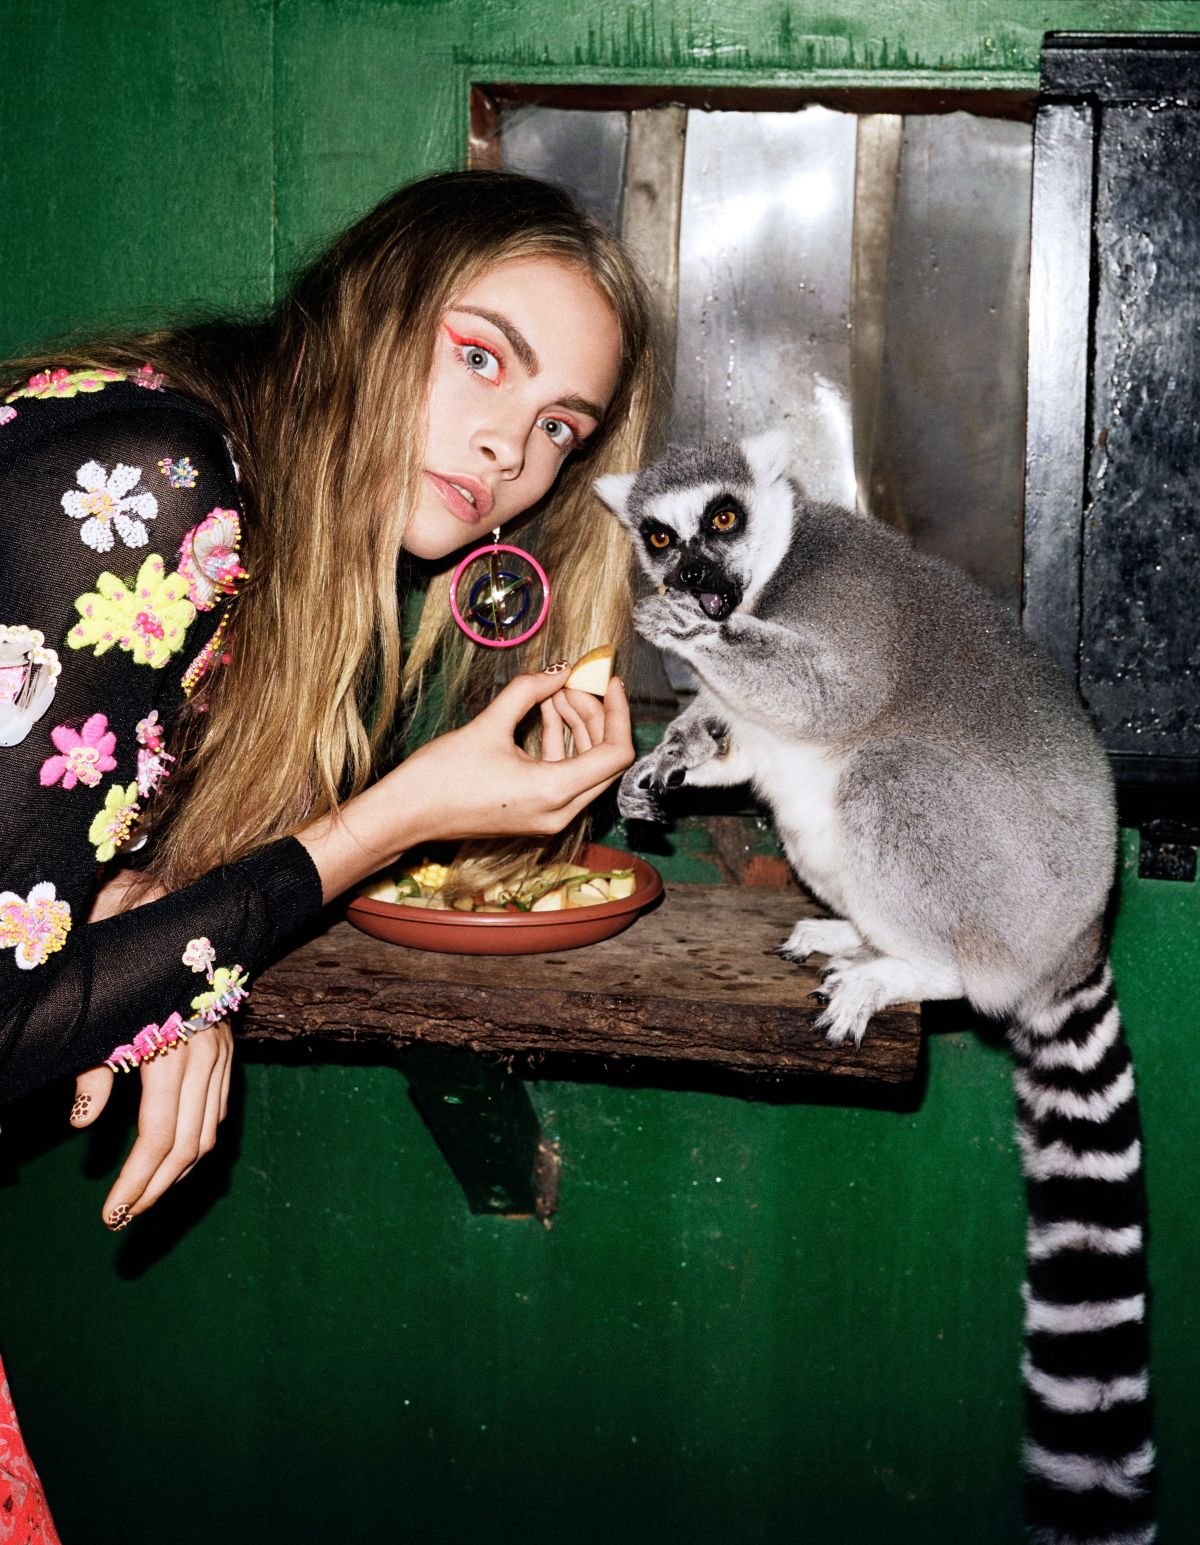 cara-delevingne-at-2012-angelo-pennetta-photoshoot_4